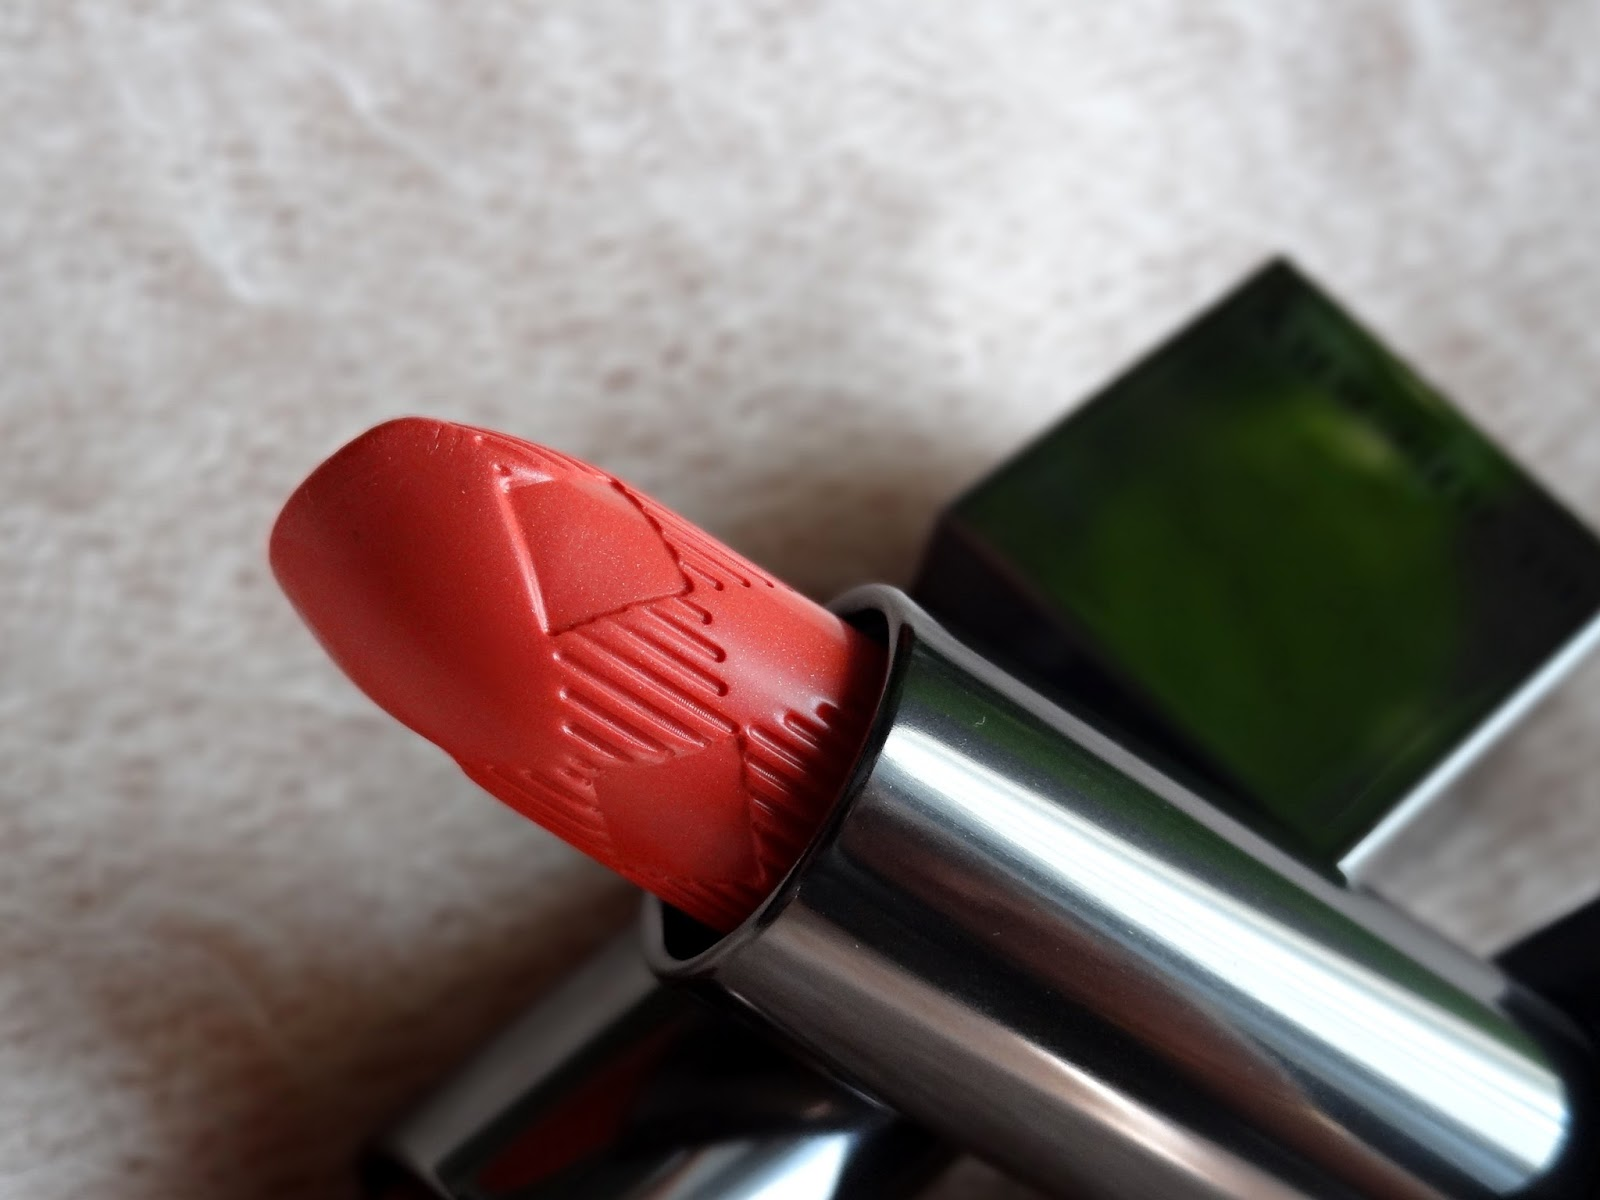 Burberry Kisses Lipsticks in Coral Pink